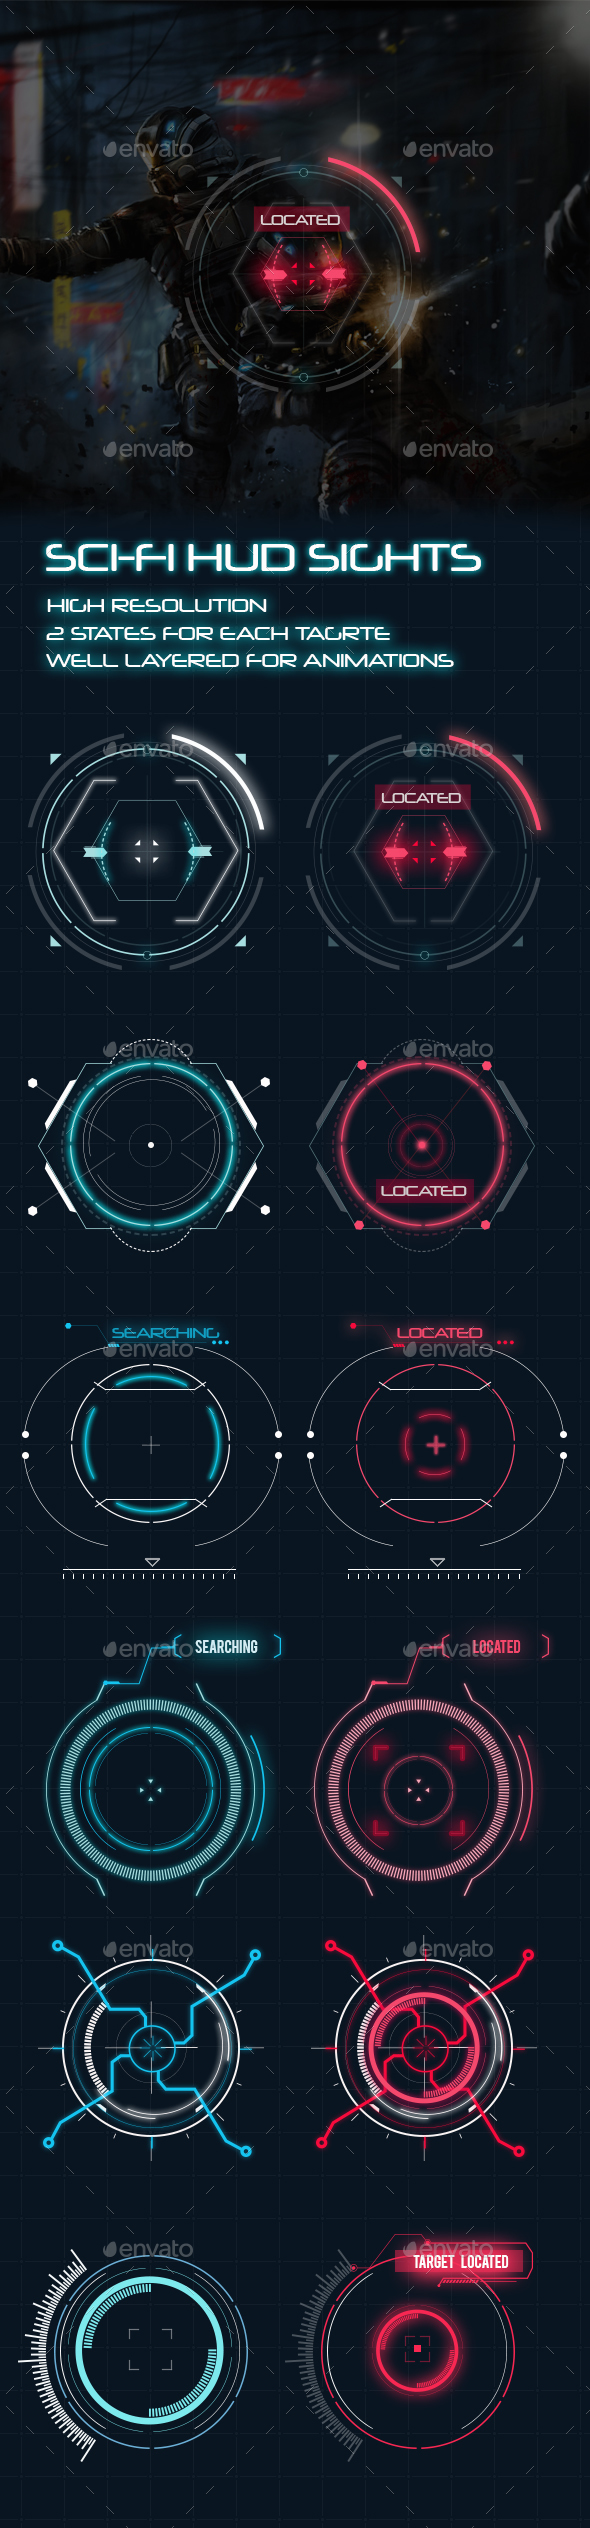 GraphicRiver Sci-Fi HUD Elements for Games 20366649